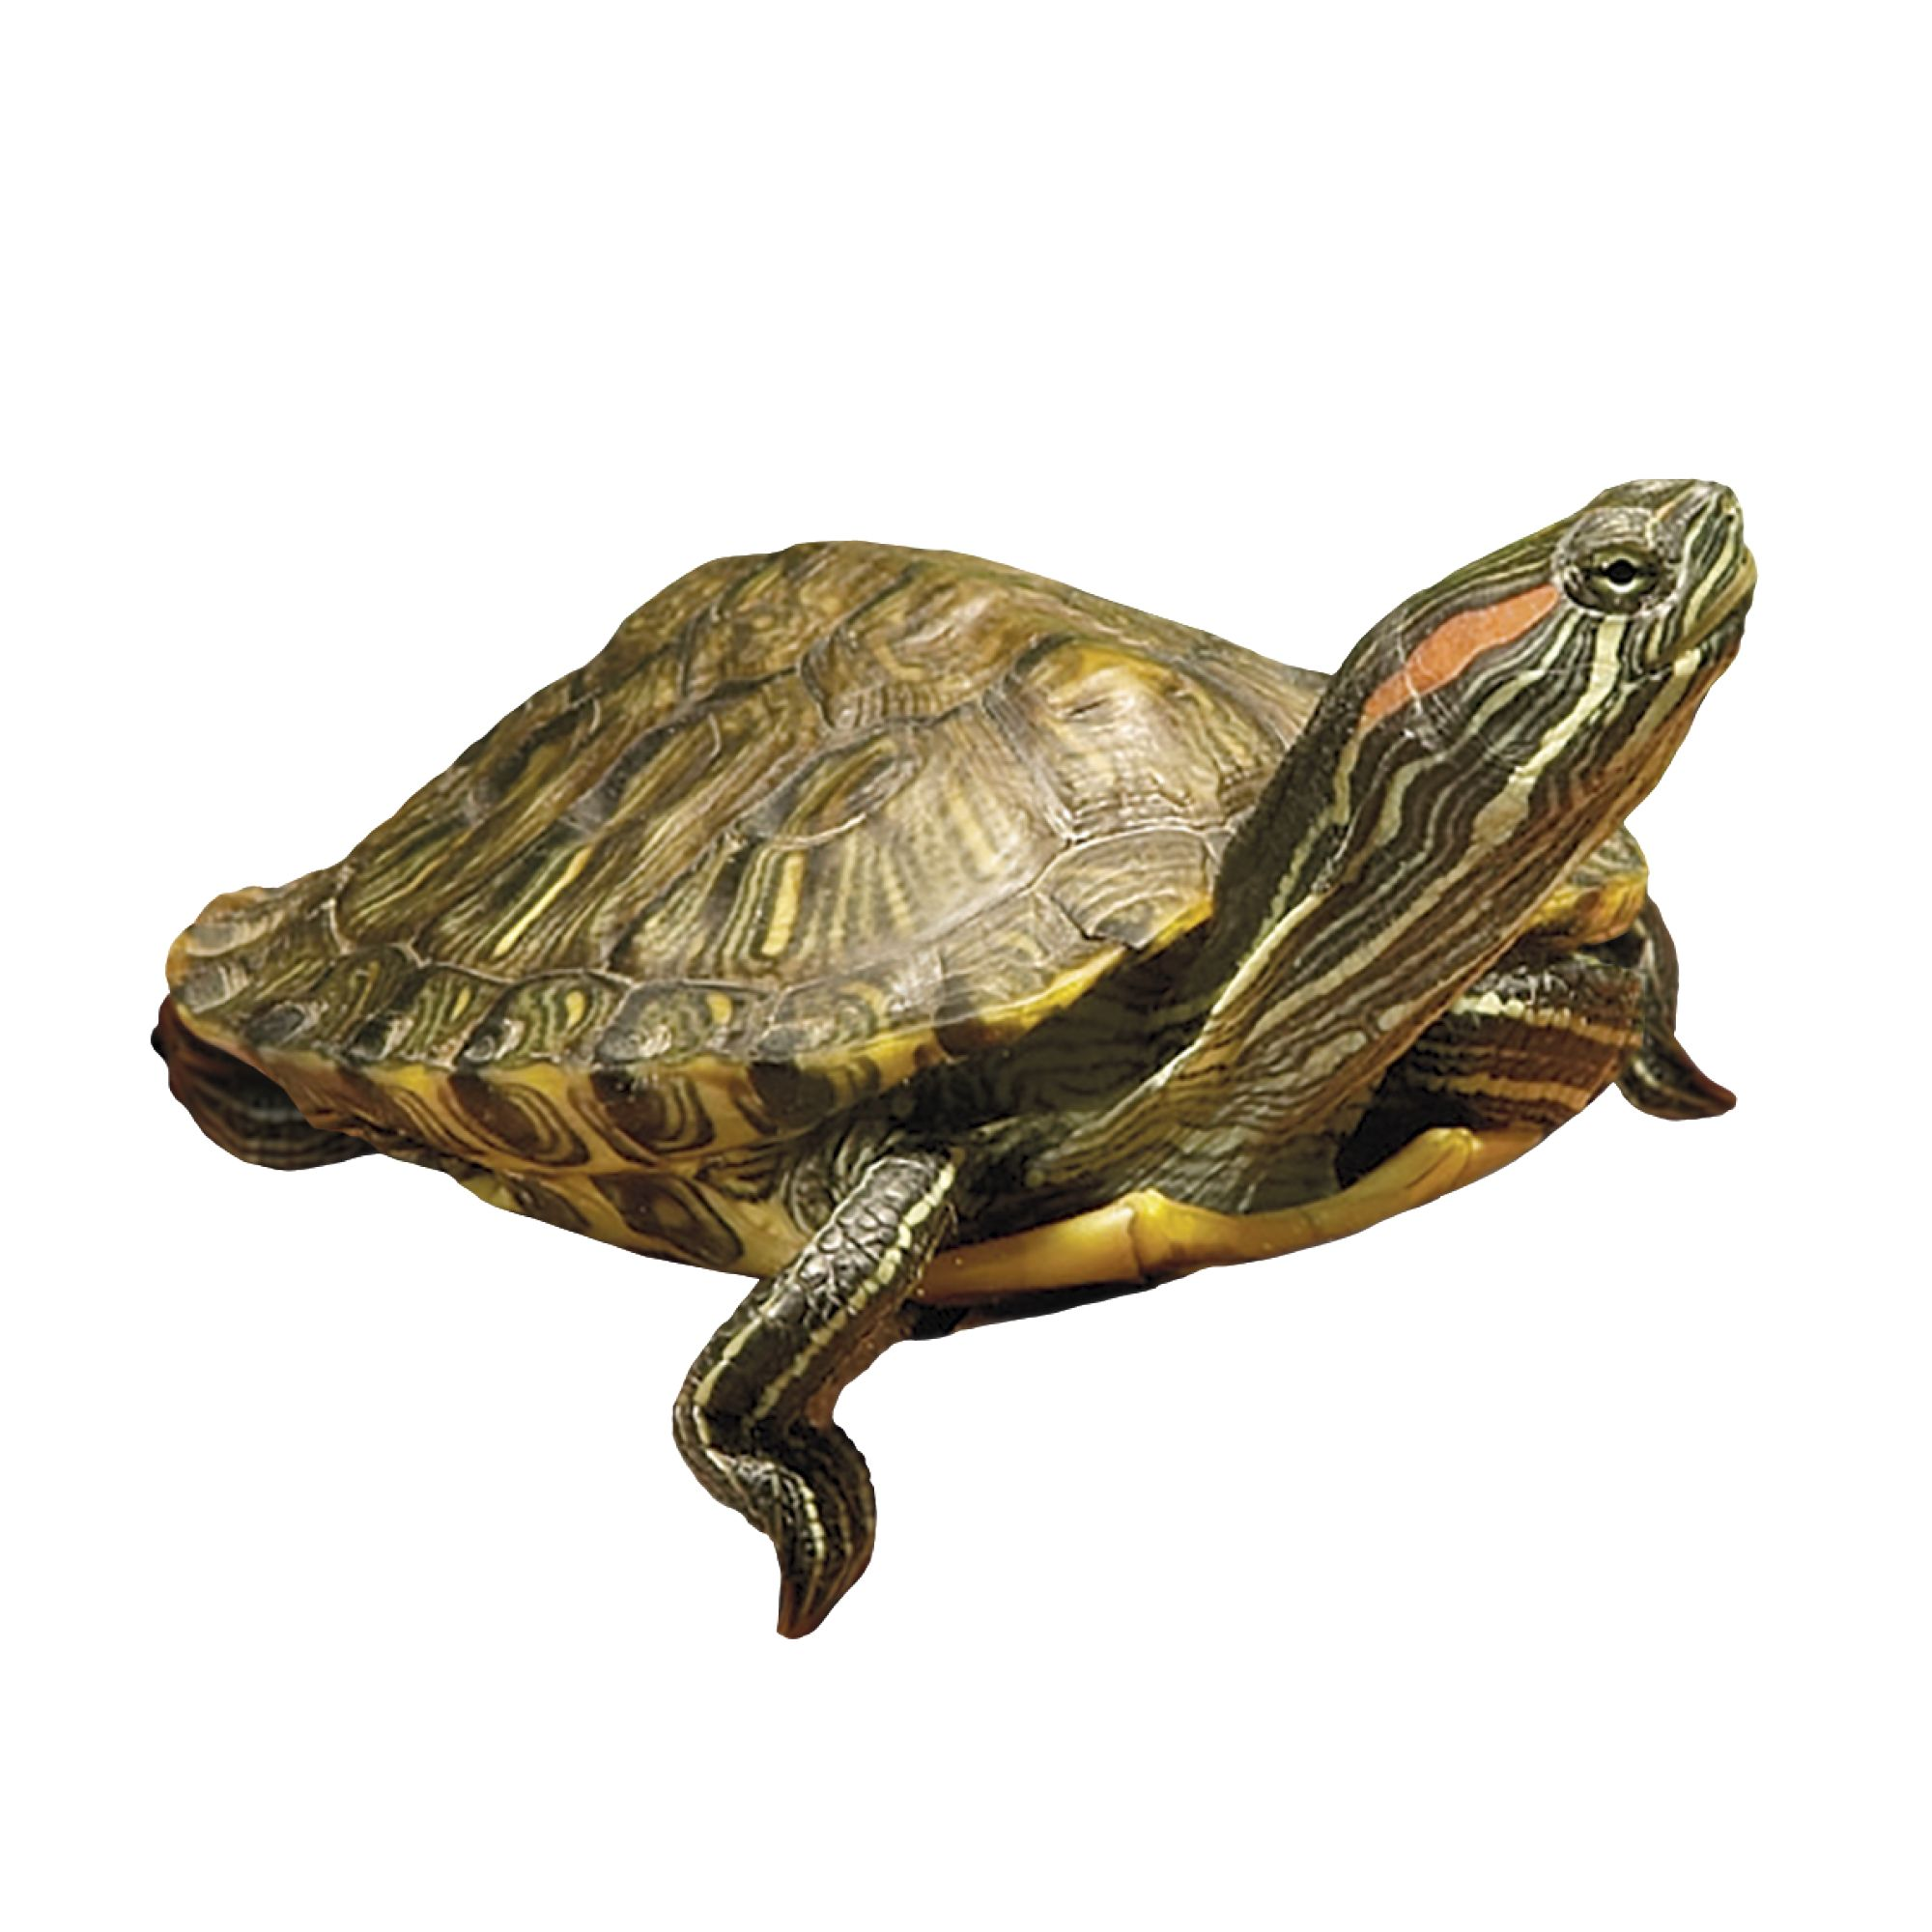 Red Eared Slider Reptile Snakes Turtles More Petsmart